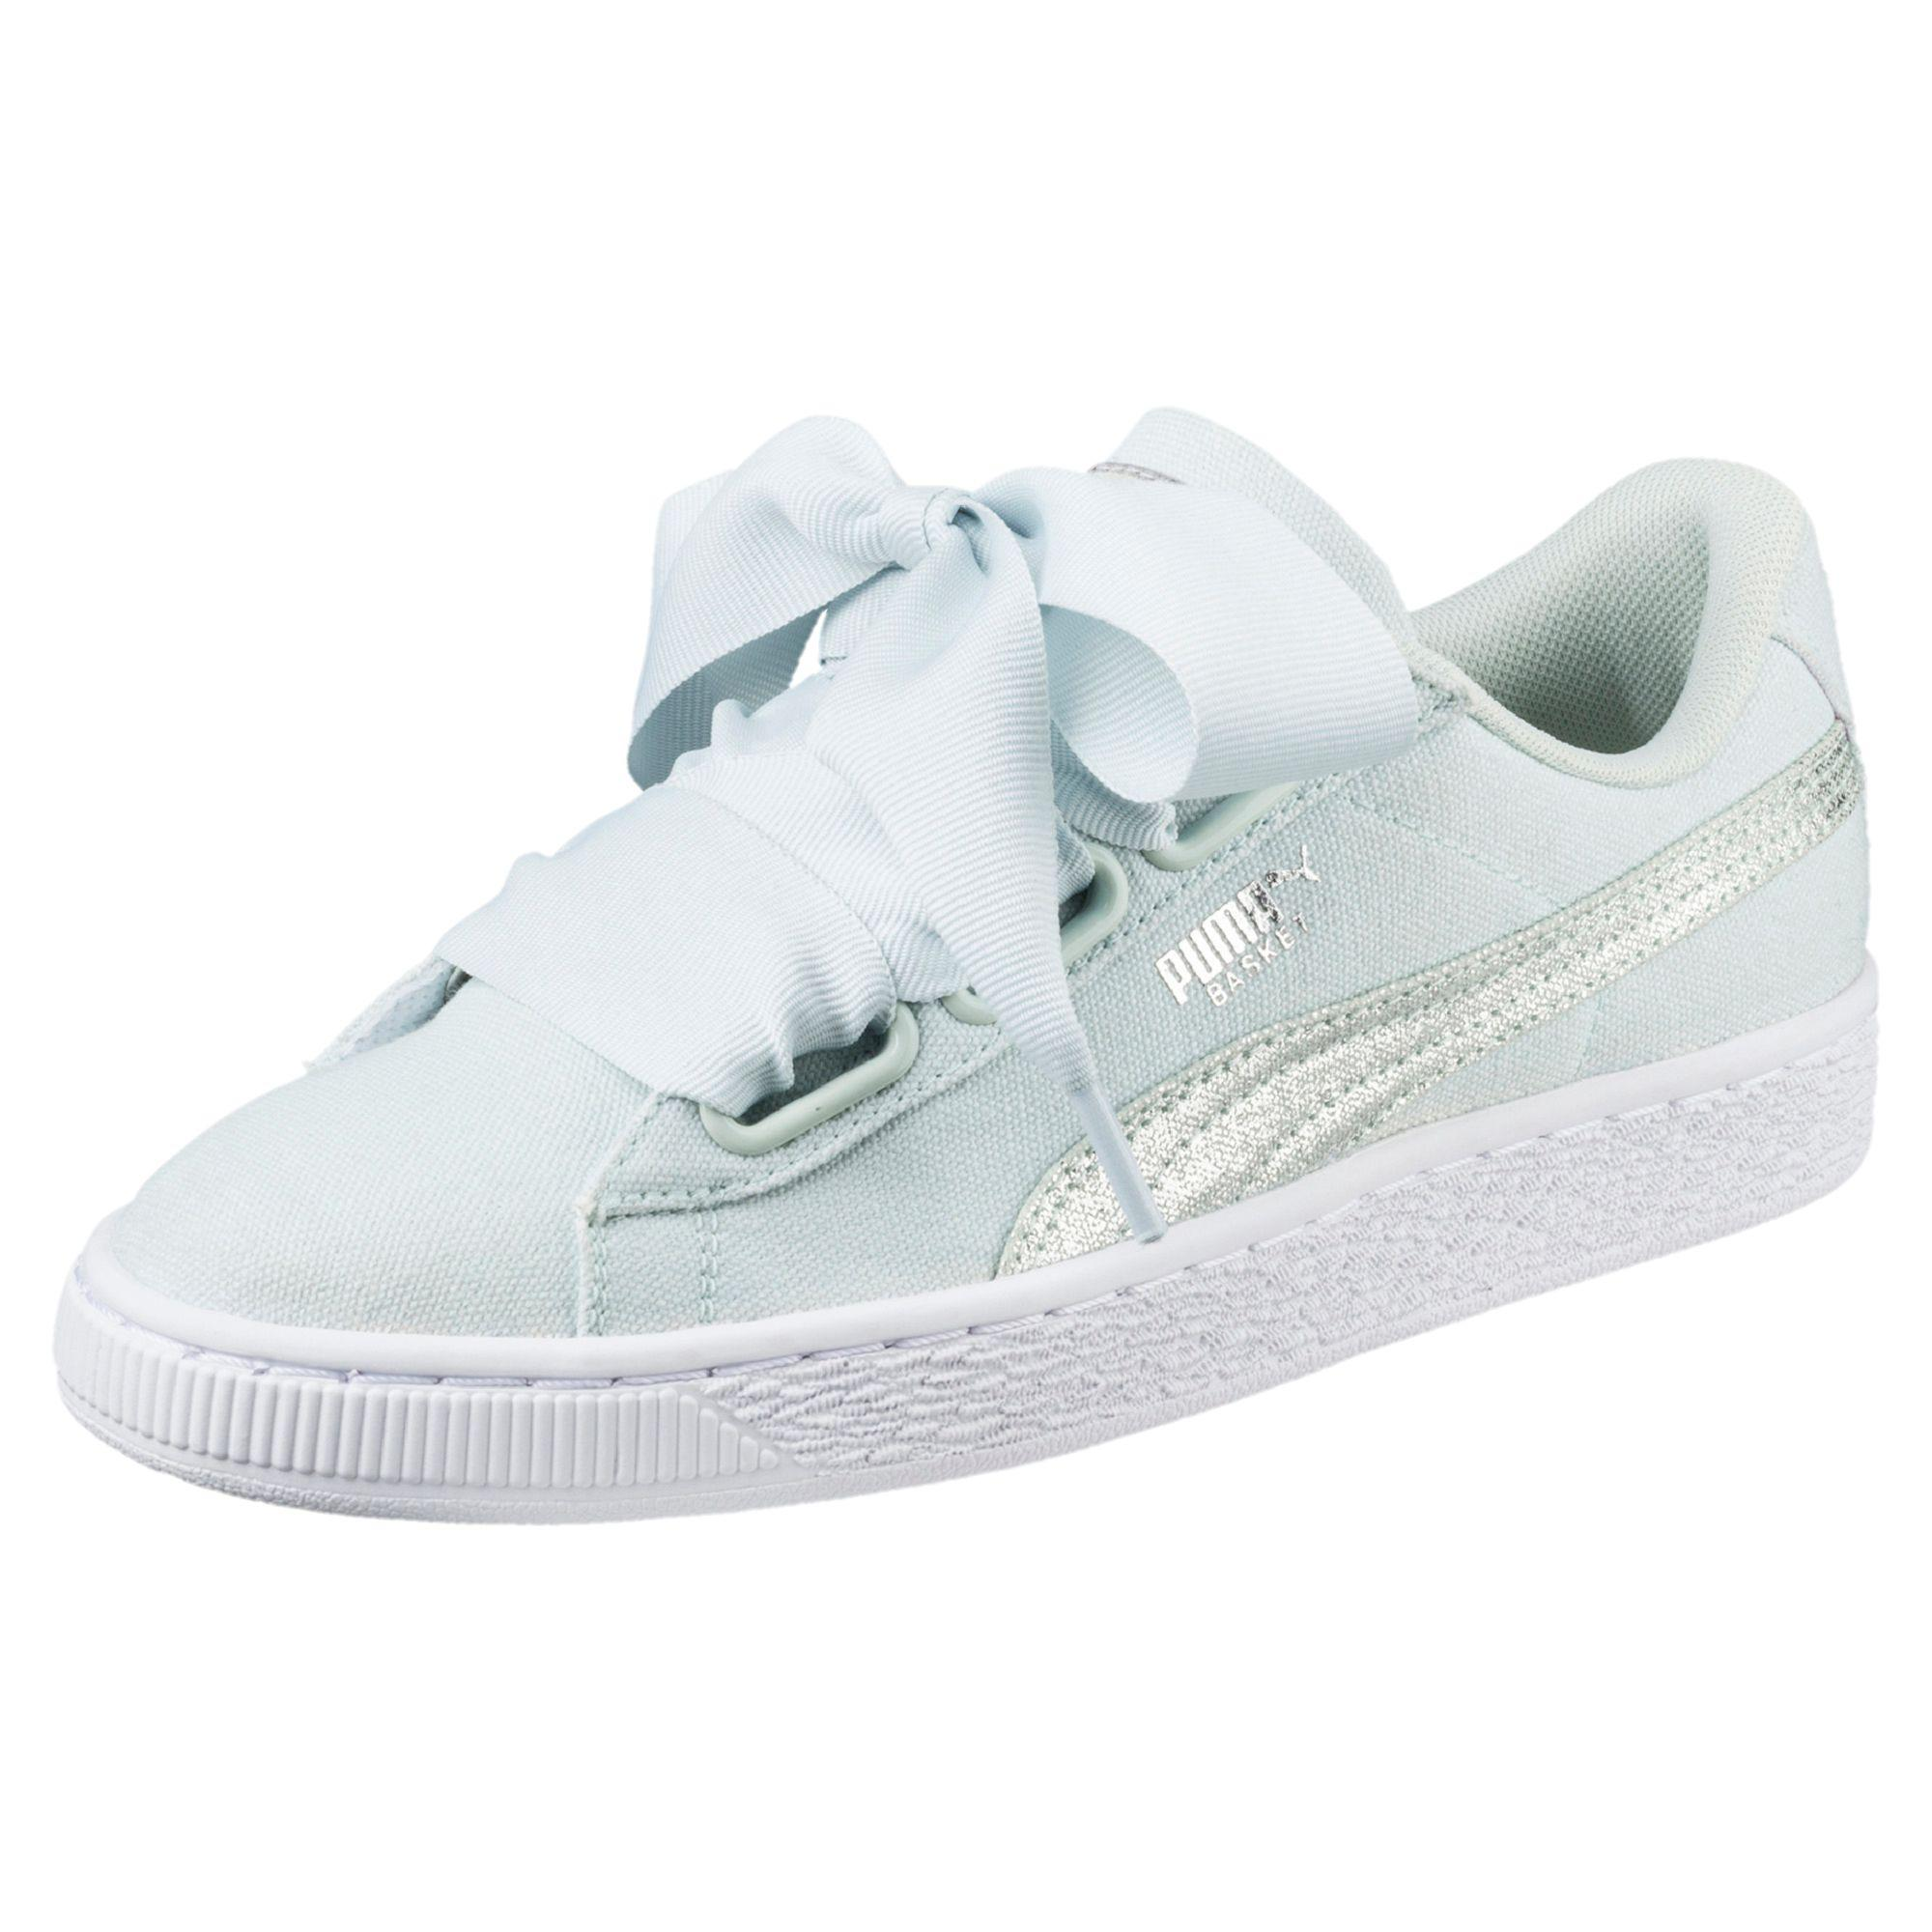 Femmes Puma Canvas Basket White Chaussures Blue Flower Heart T3cFK1lJ